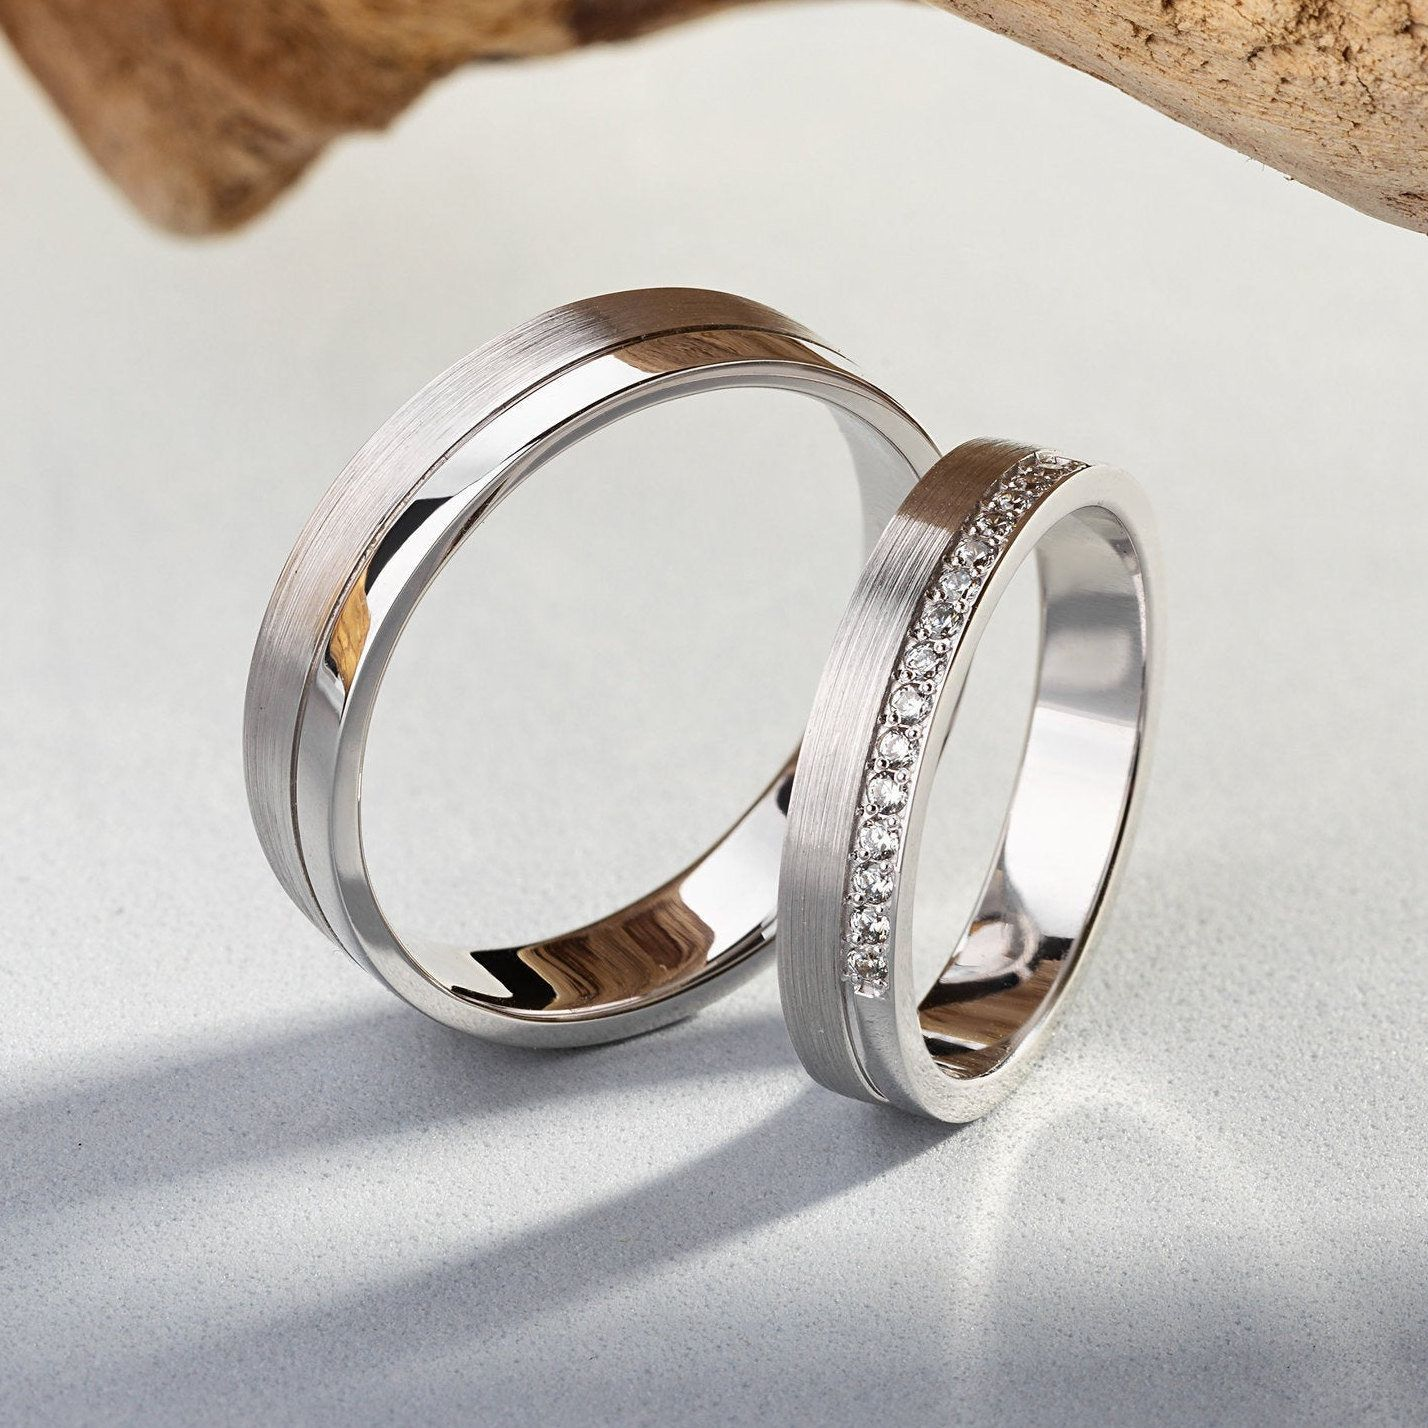 White Gold Wedding Bands With Diamonds Matching Wedding Etsy Couple Wedding Rings White Gold Wedding Rings Wedding Rings Unique